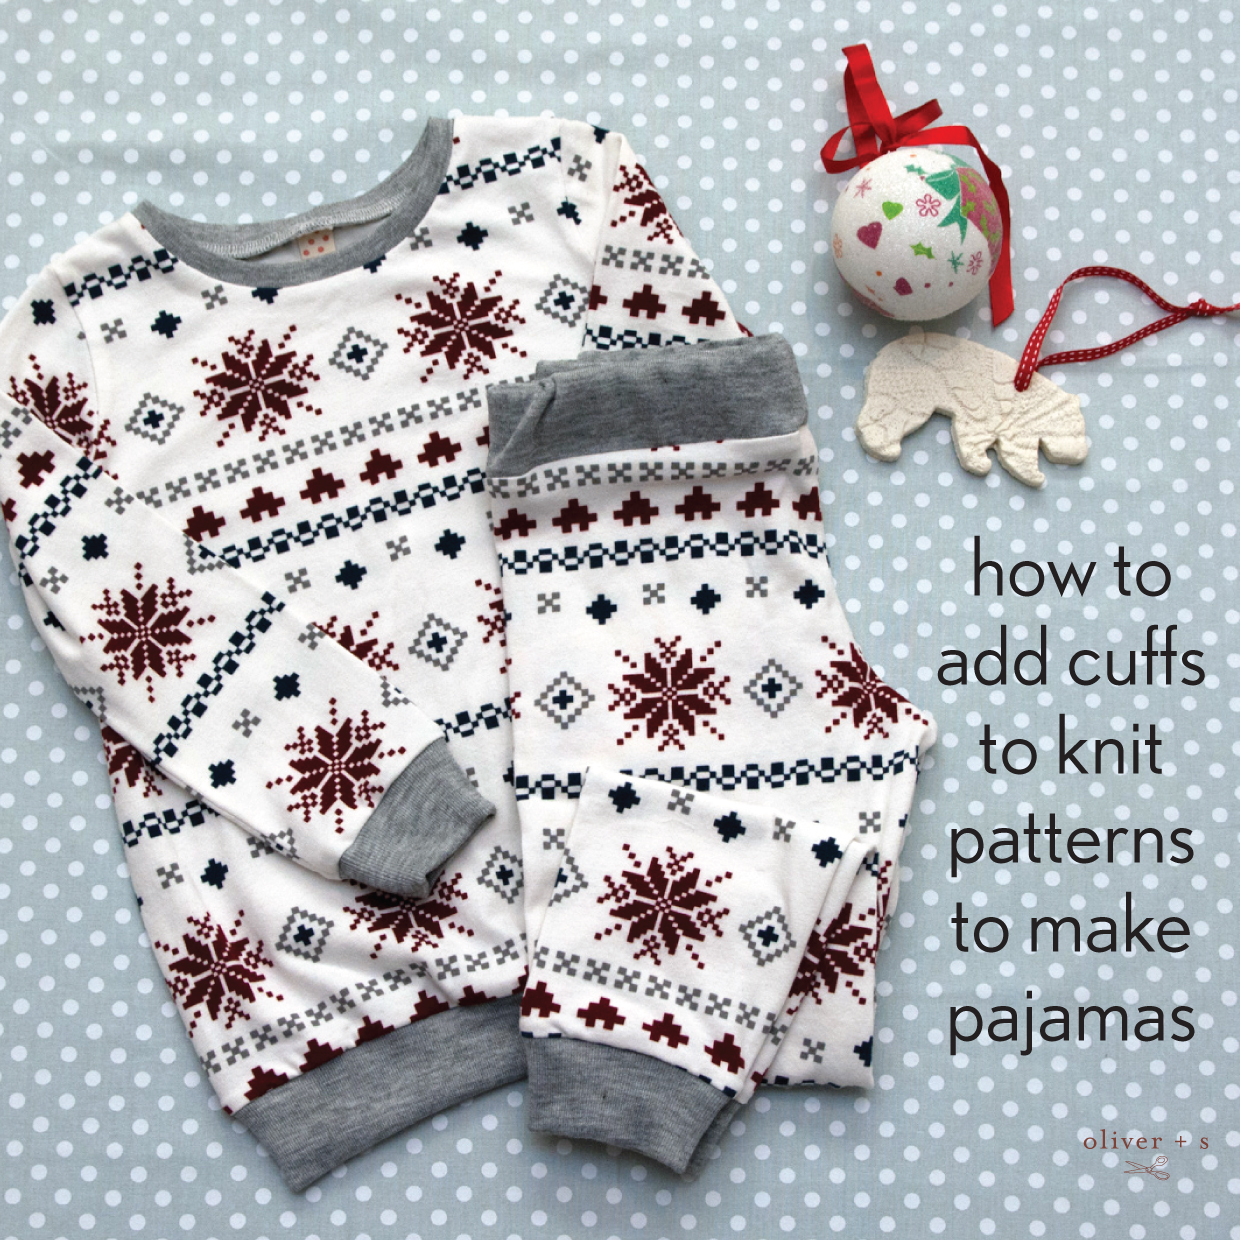 How to Add Cuffs to Knit Patterns to Make Pajamas | Blog | Oliver + S